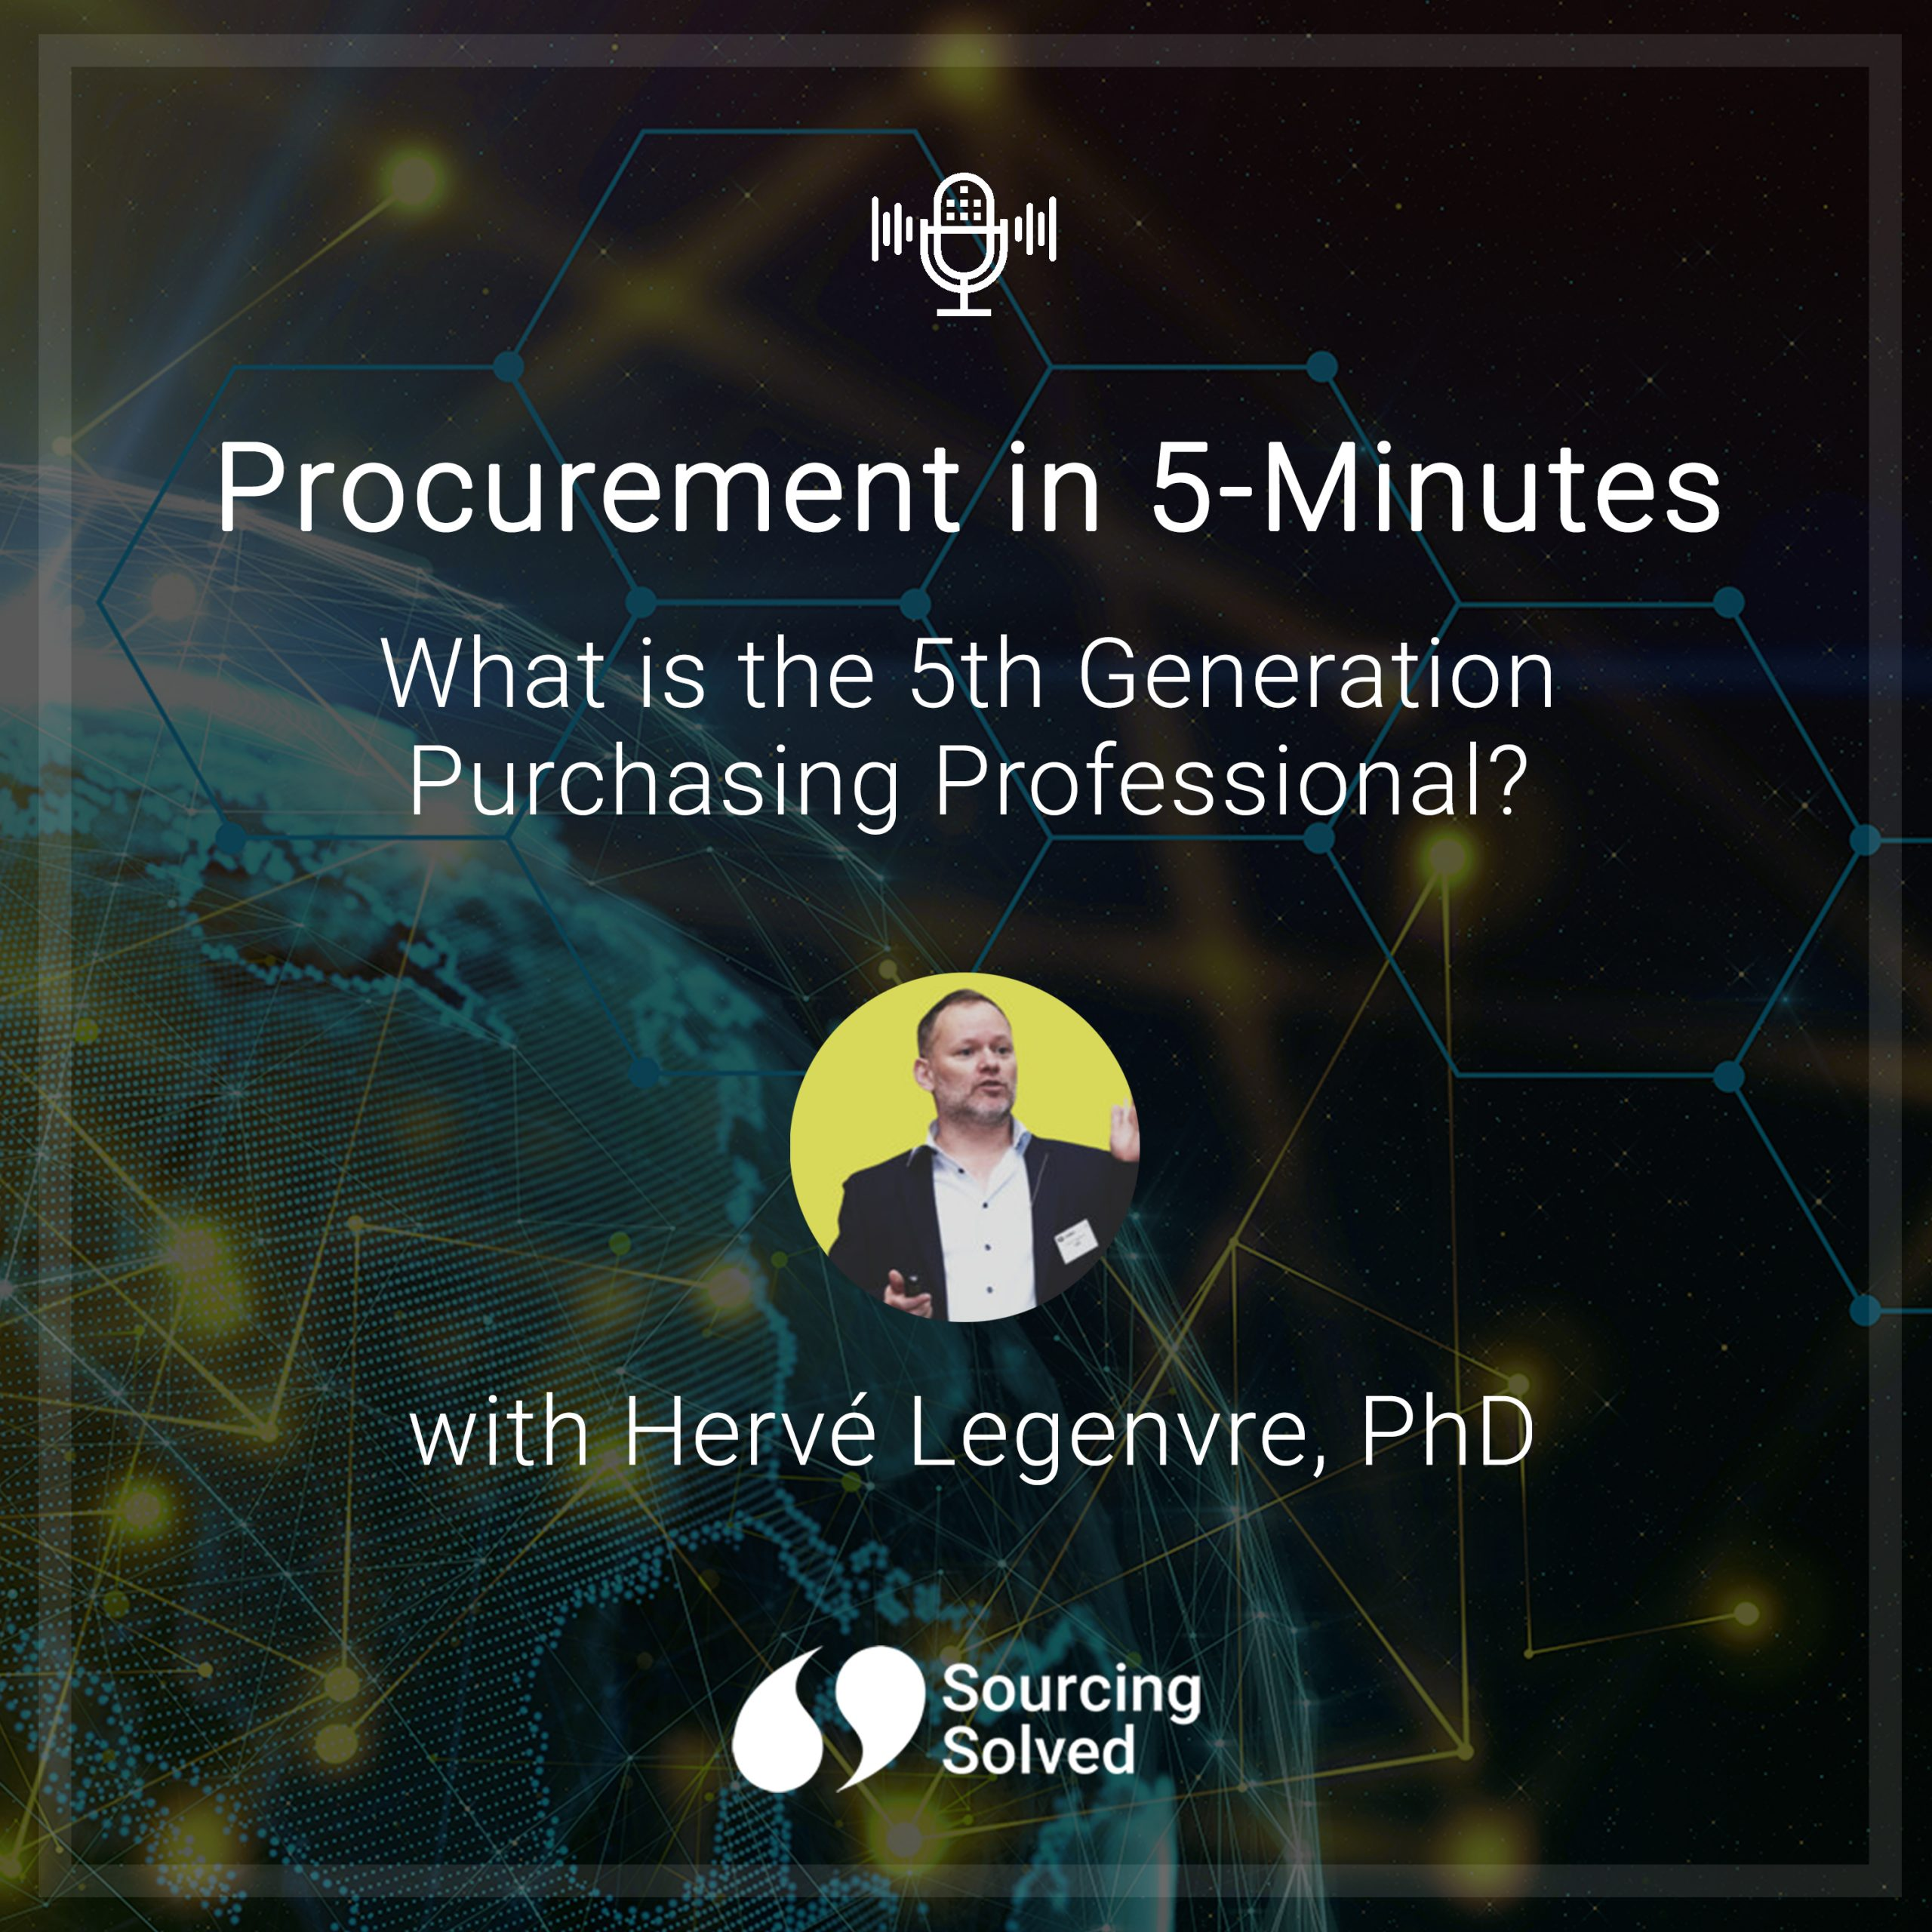 Procurement in 5-Minutes: What is the 5th Generation Purchasing Professional?